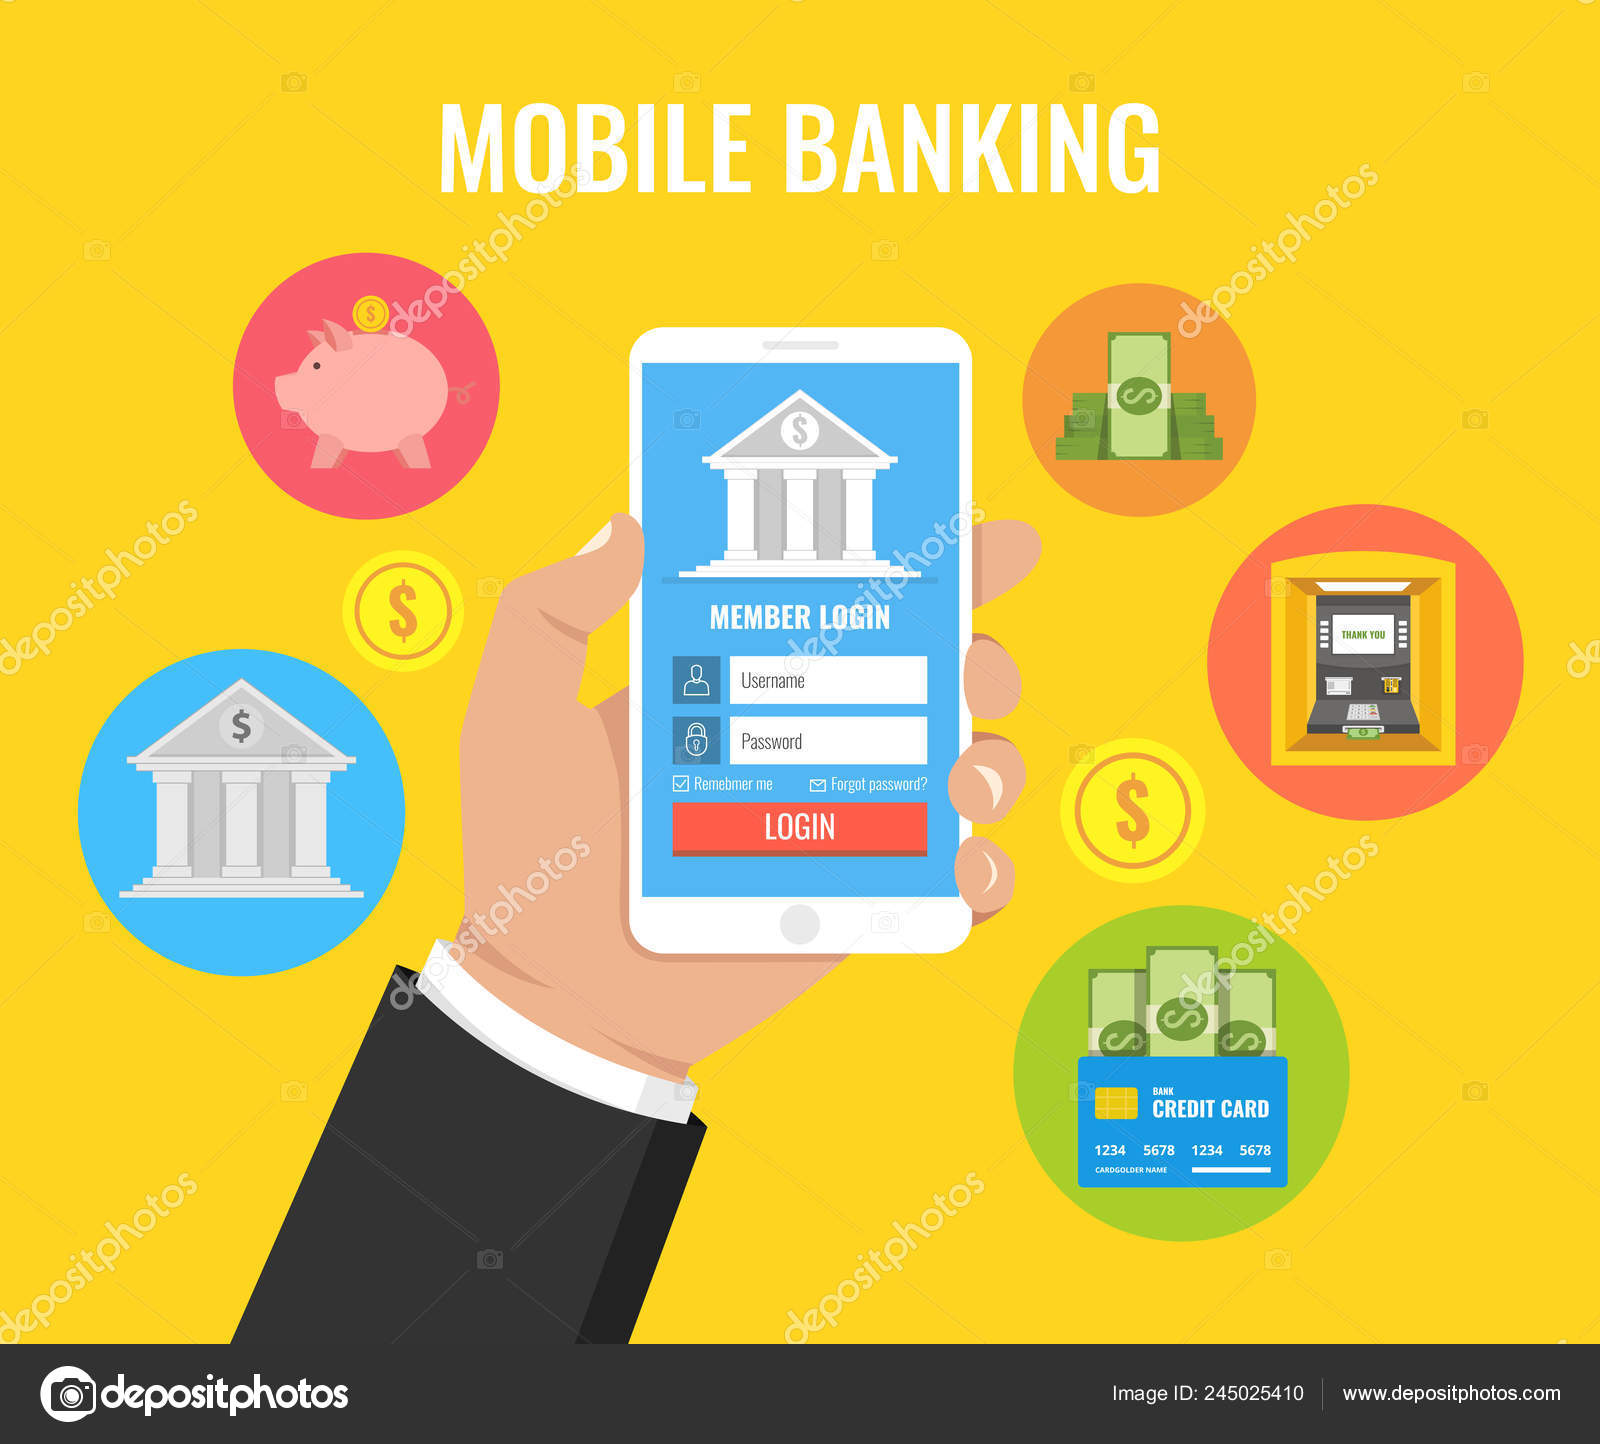 Mobile Banking Concept Man Holding Smartphone Payment App